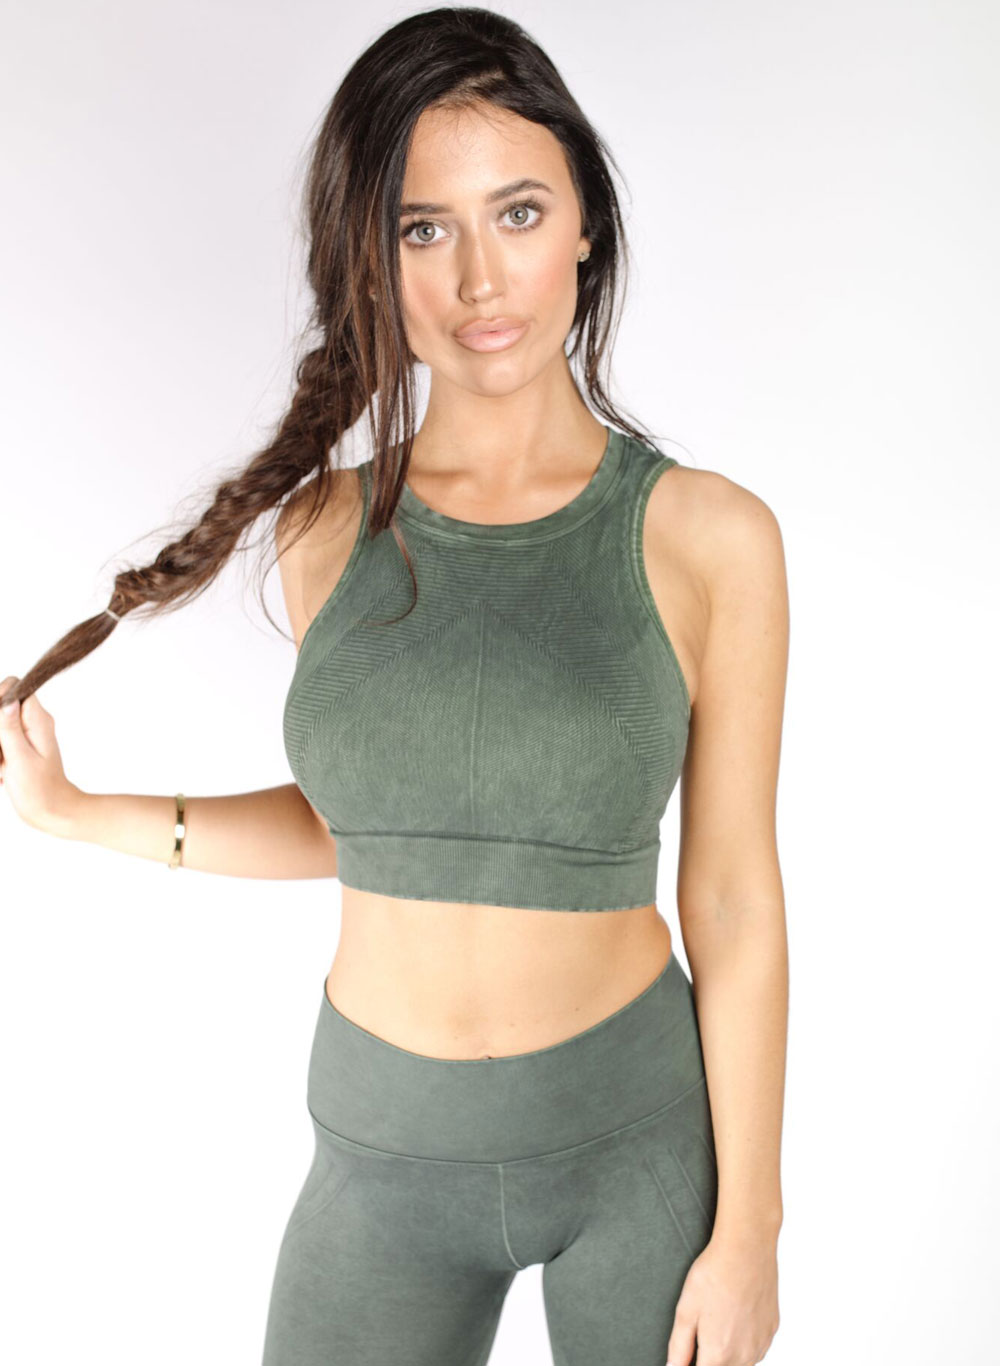 e858cfc54eb183 Nux One by One Crop Top for Gym or Casual Sportswear   Acenla